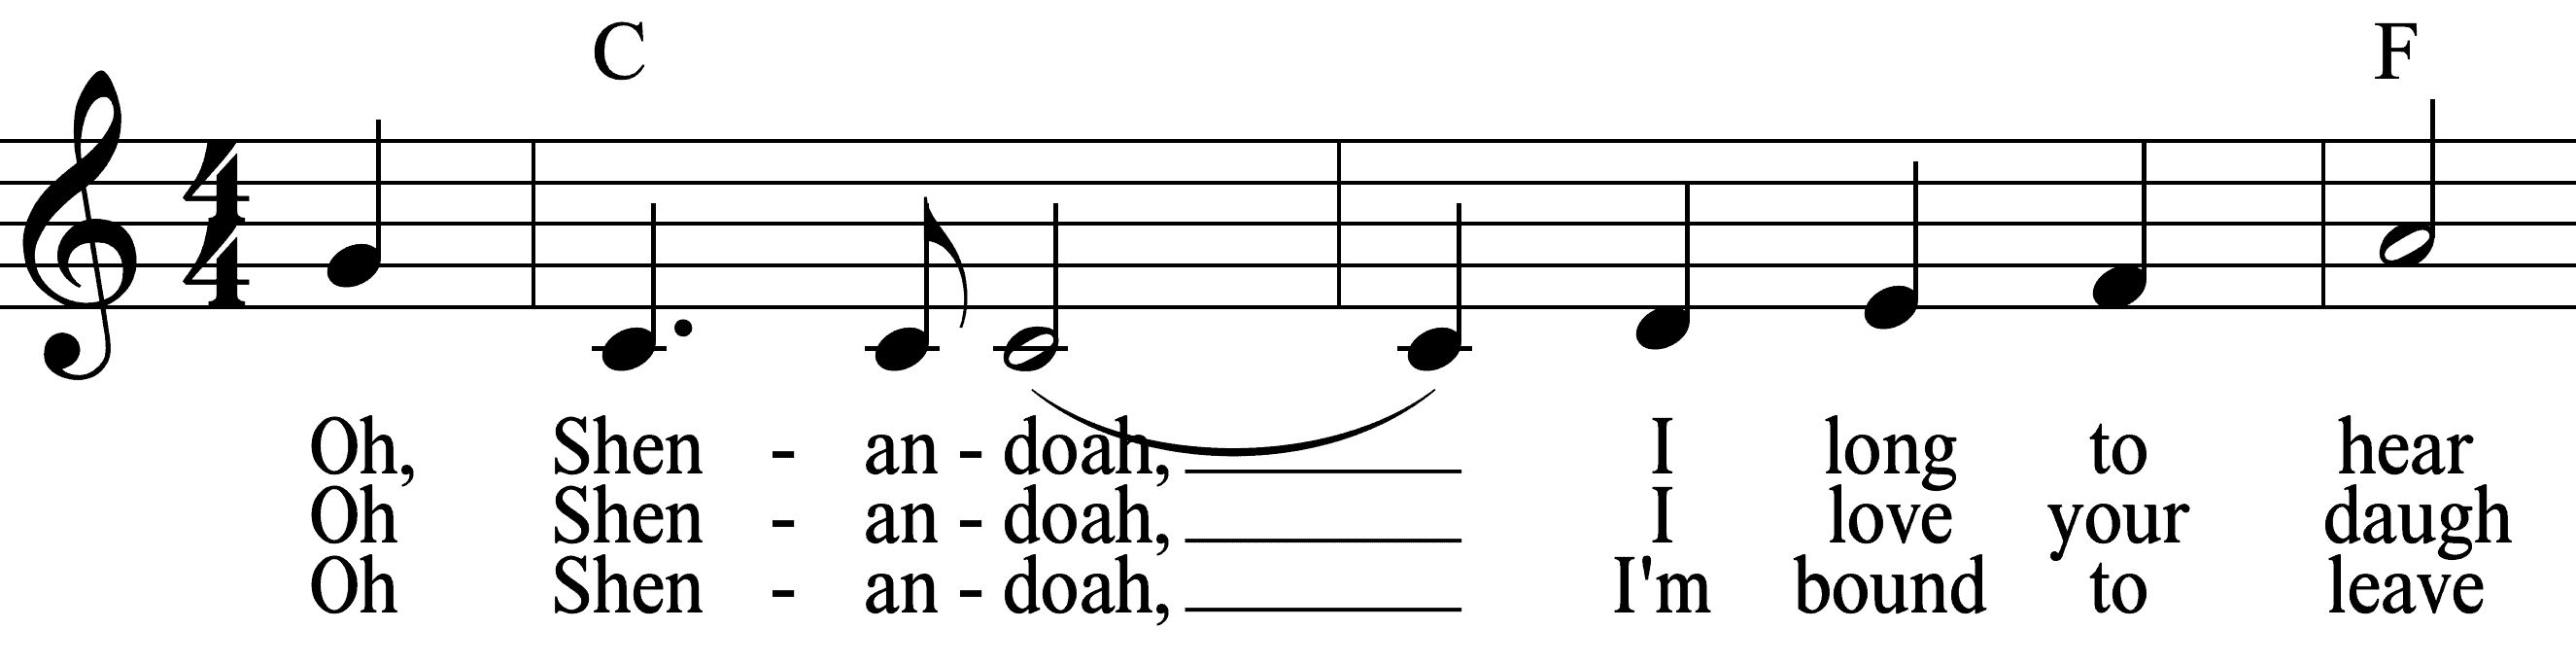 example of music notation